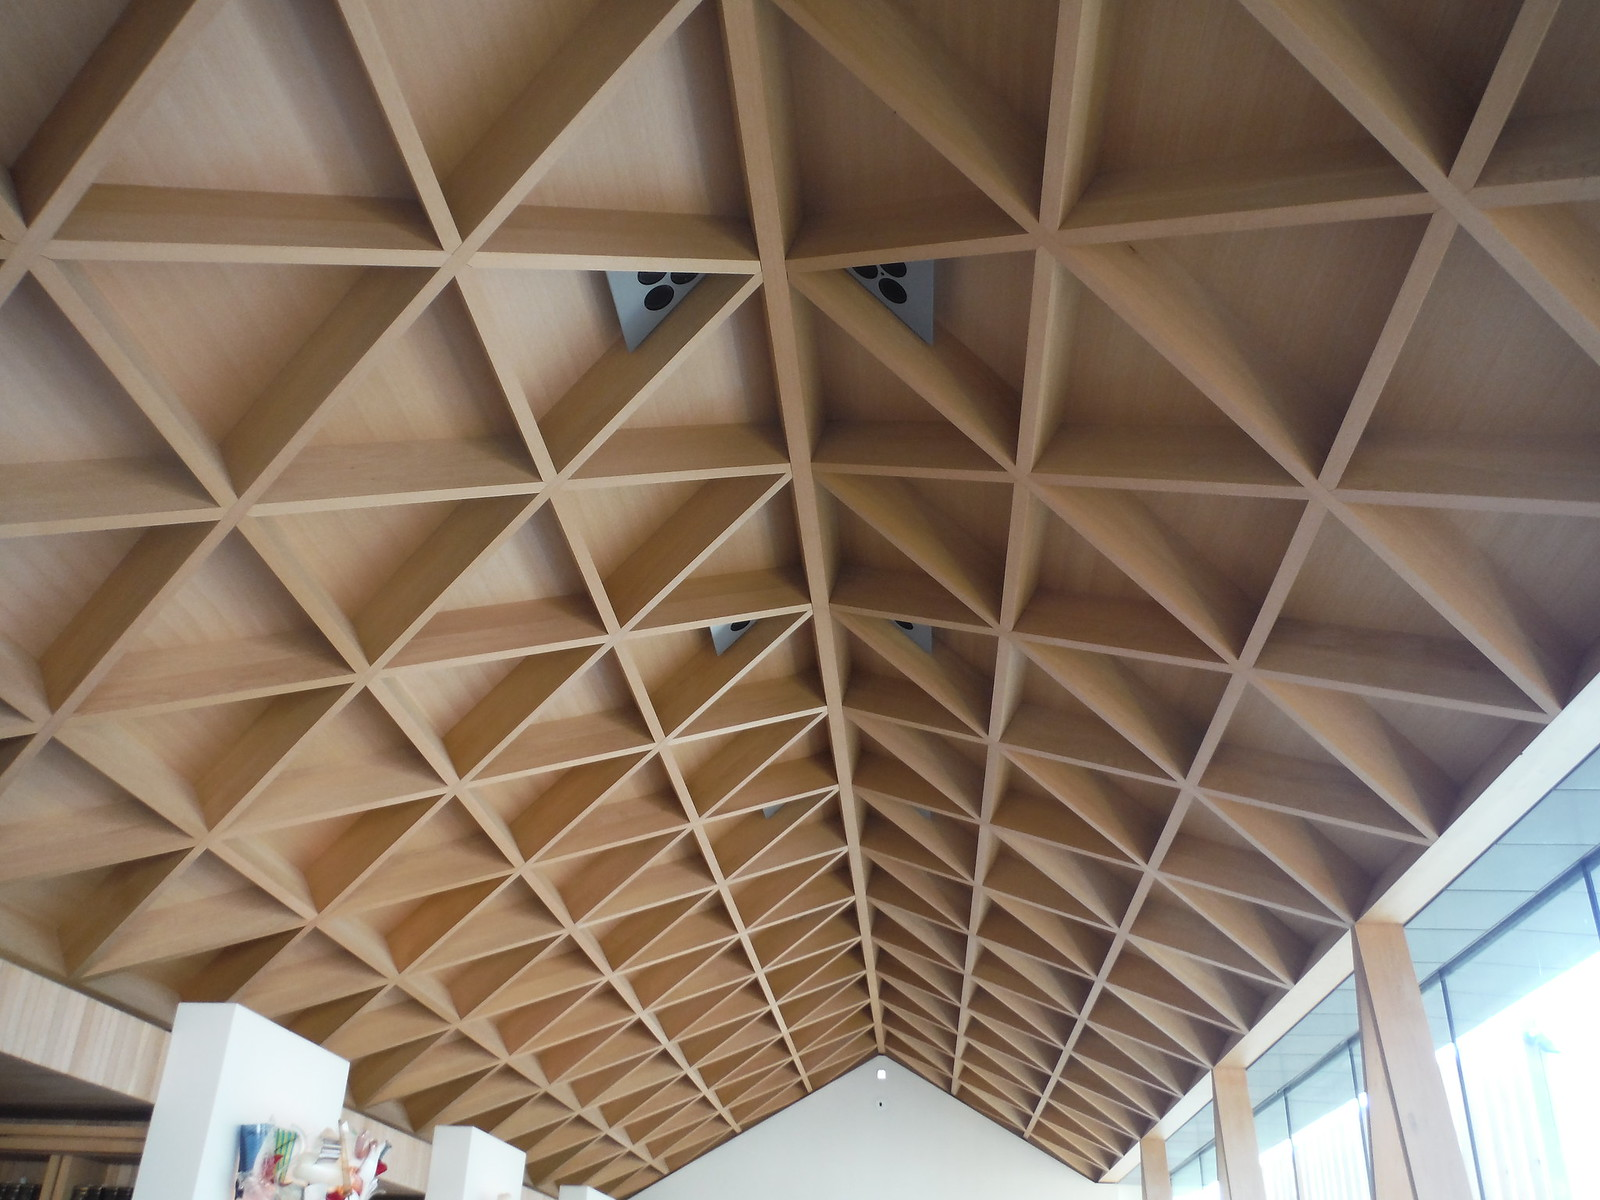 Ceiling of Reading Room, Windmill Hill Archive, Waddesdon Estate SWC 192 Haddenham to Aylesbury (via Waddesdon)